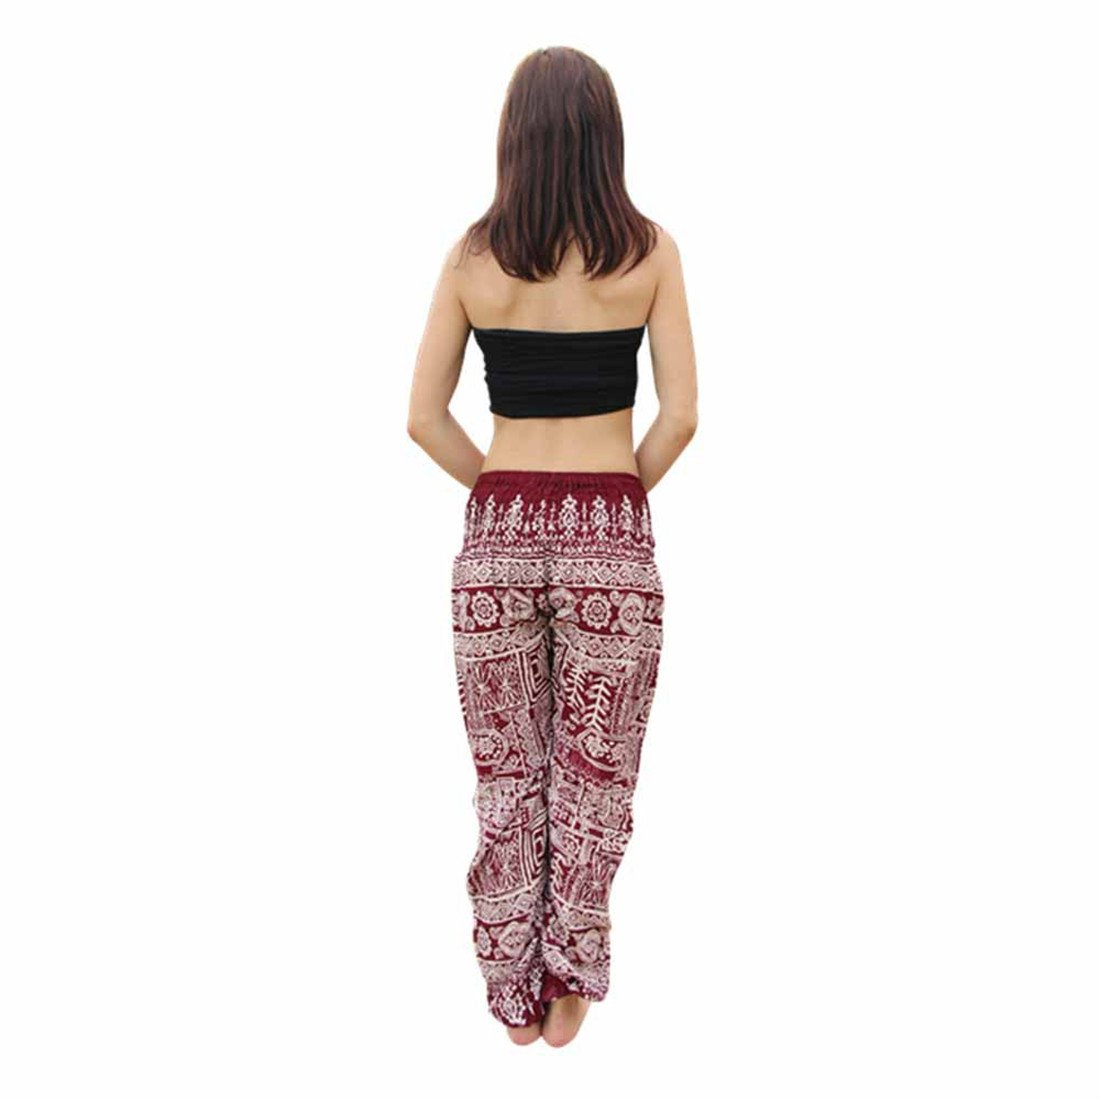 9d36bbe2a2e28f Womens Yoga Pants,YKA,Men Thai Harem Trousers Boho Festival Hippy Smock  High Waist Pants for Ladies - Purple - Free Size: Amazon.co.uk: Clothing